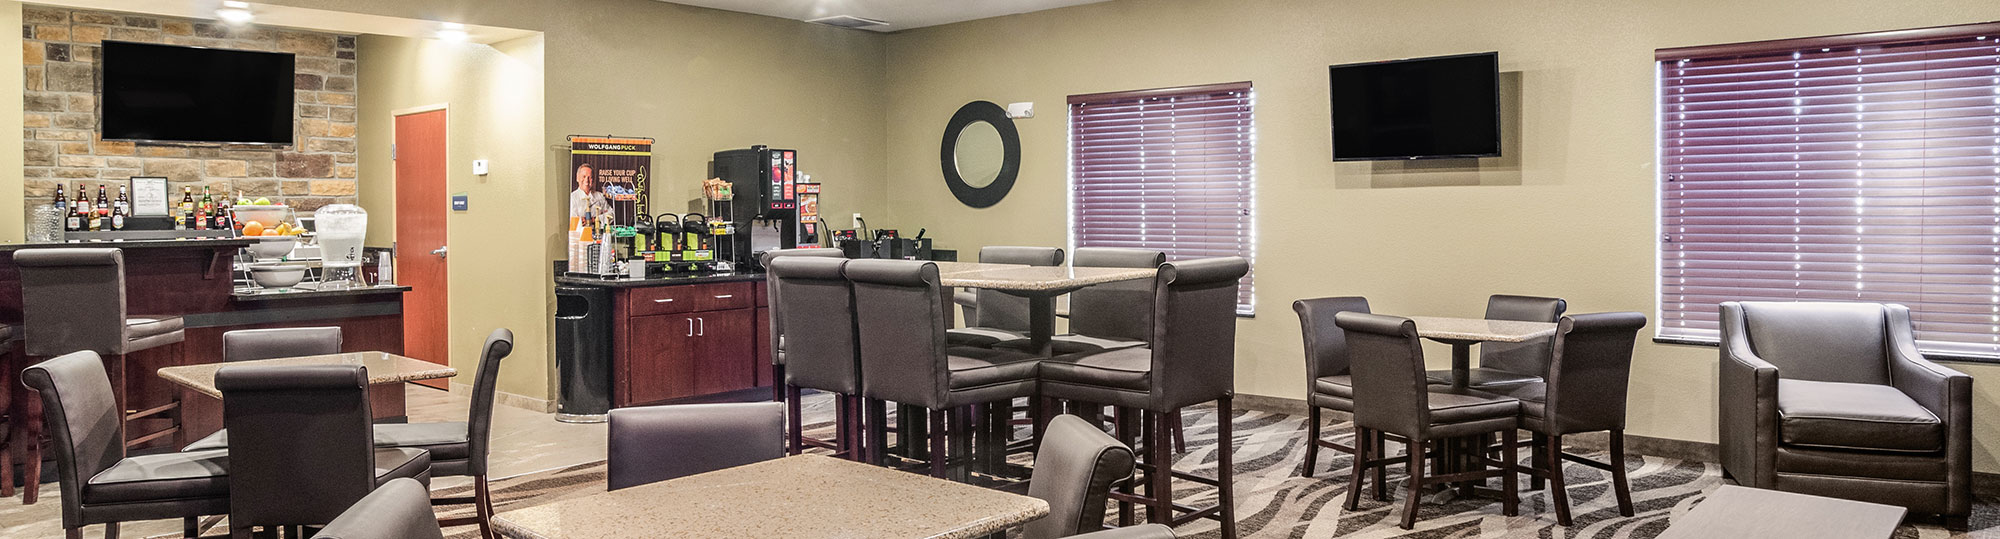 Cobblestone Hotel and Suites Gering